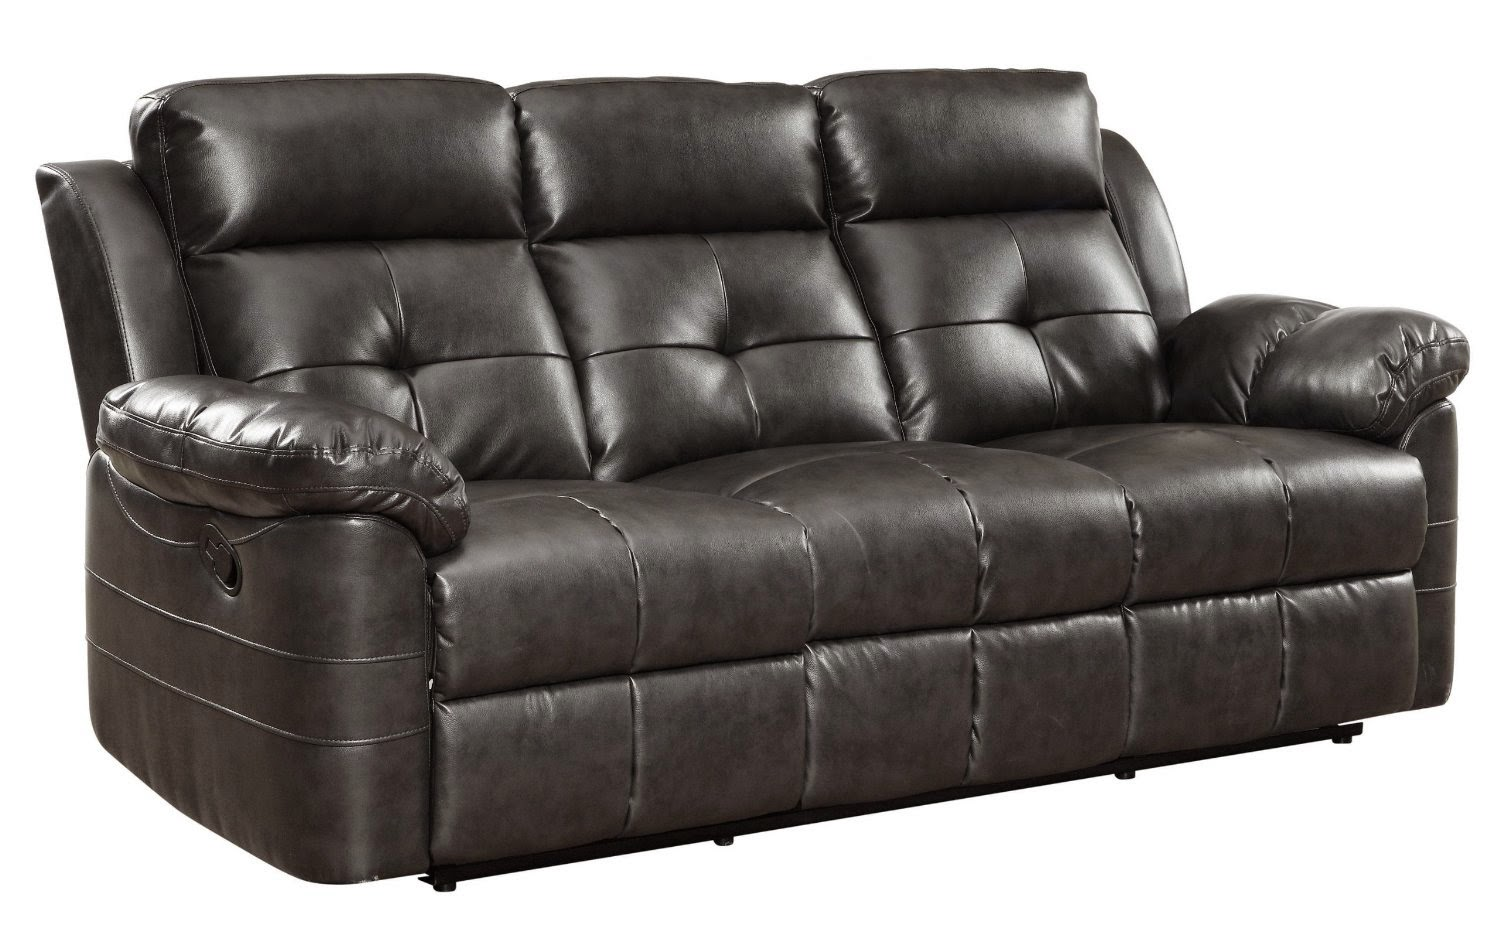 The best reclining sofas ratings reviews curved leather reclining sofa set Curved loveseat sofa